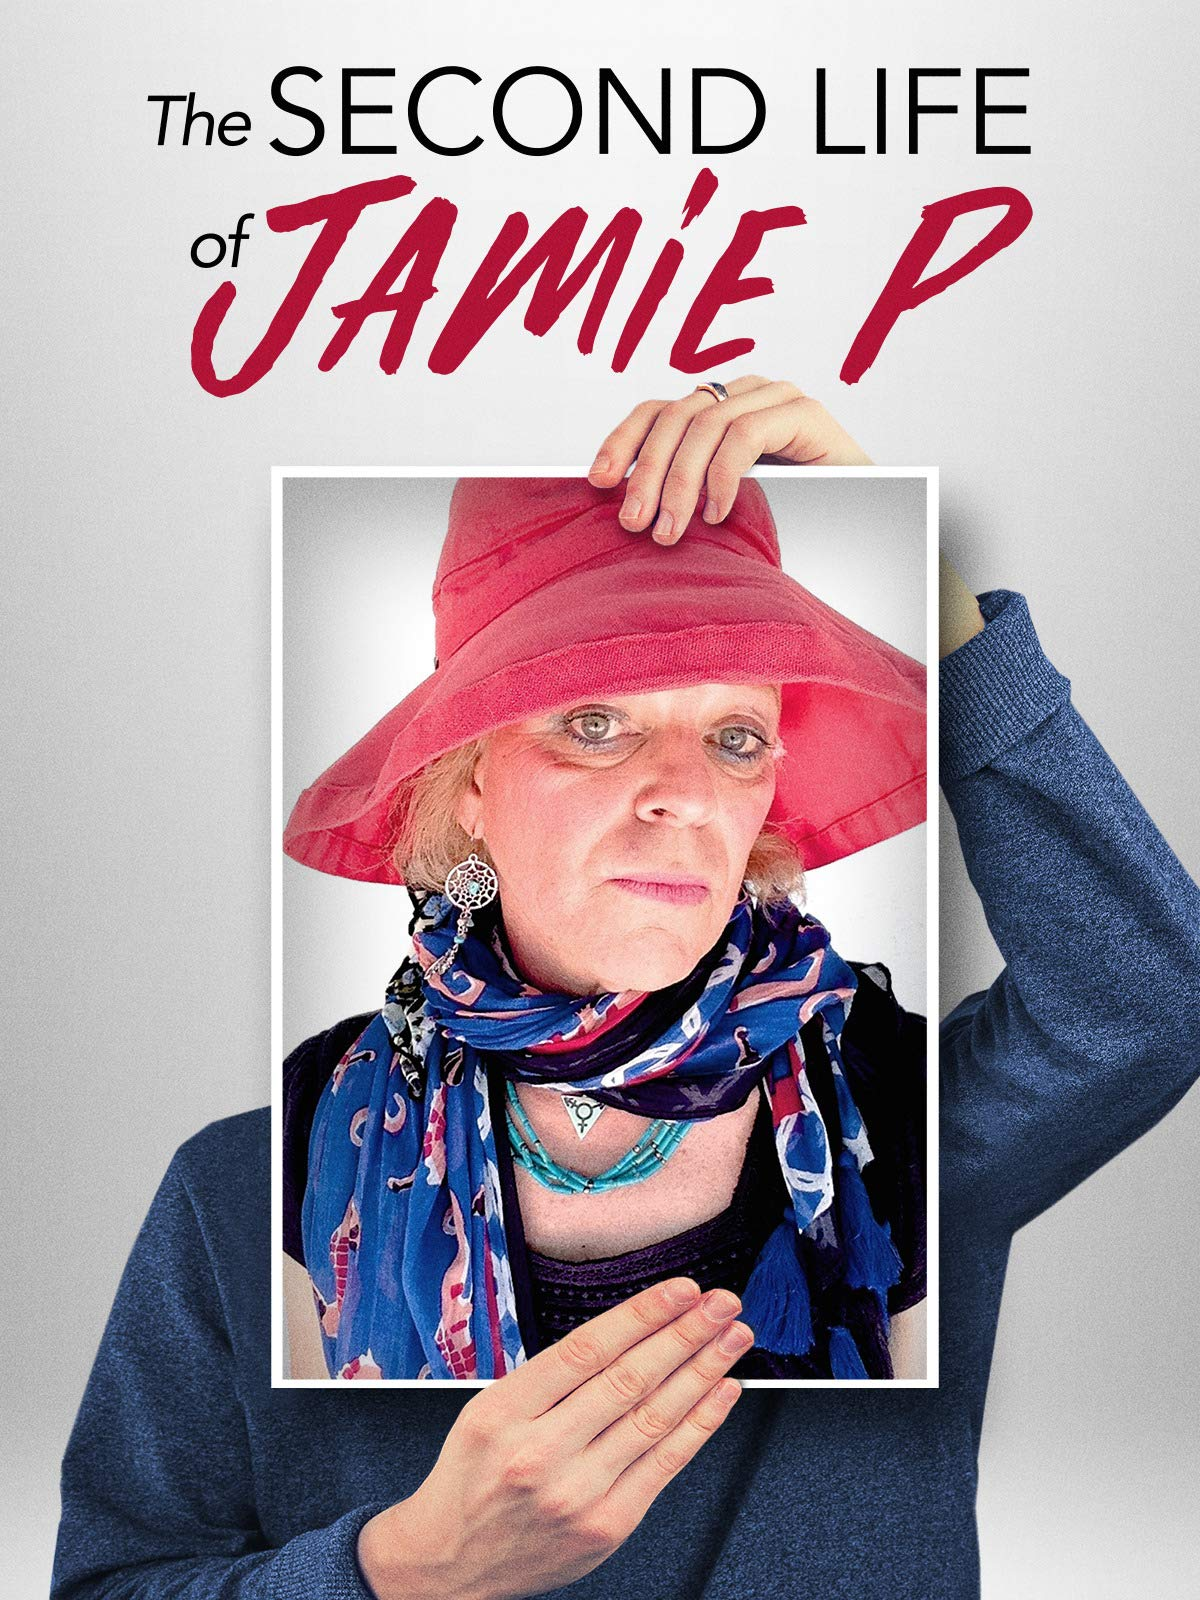 The Second Life of Jamie P.